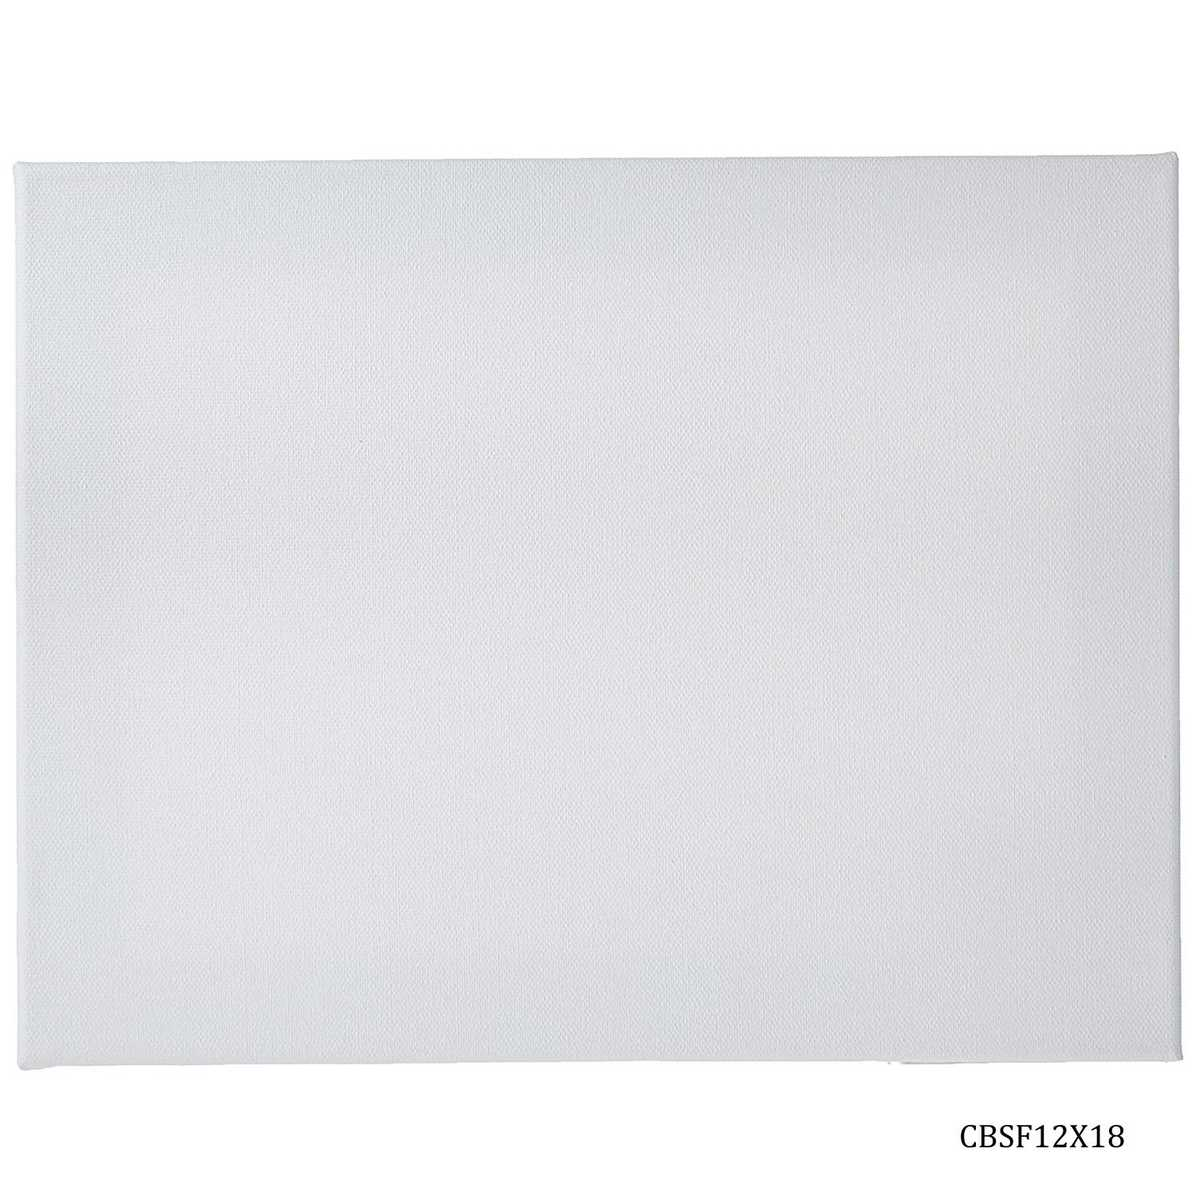 Stretched Canvas Board (12X18 Inch)